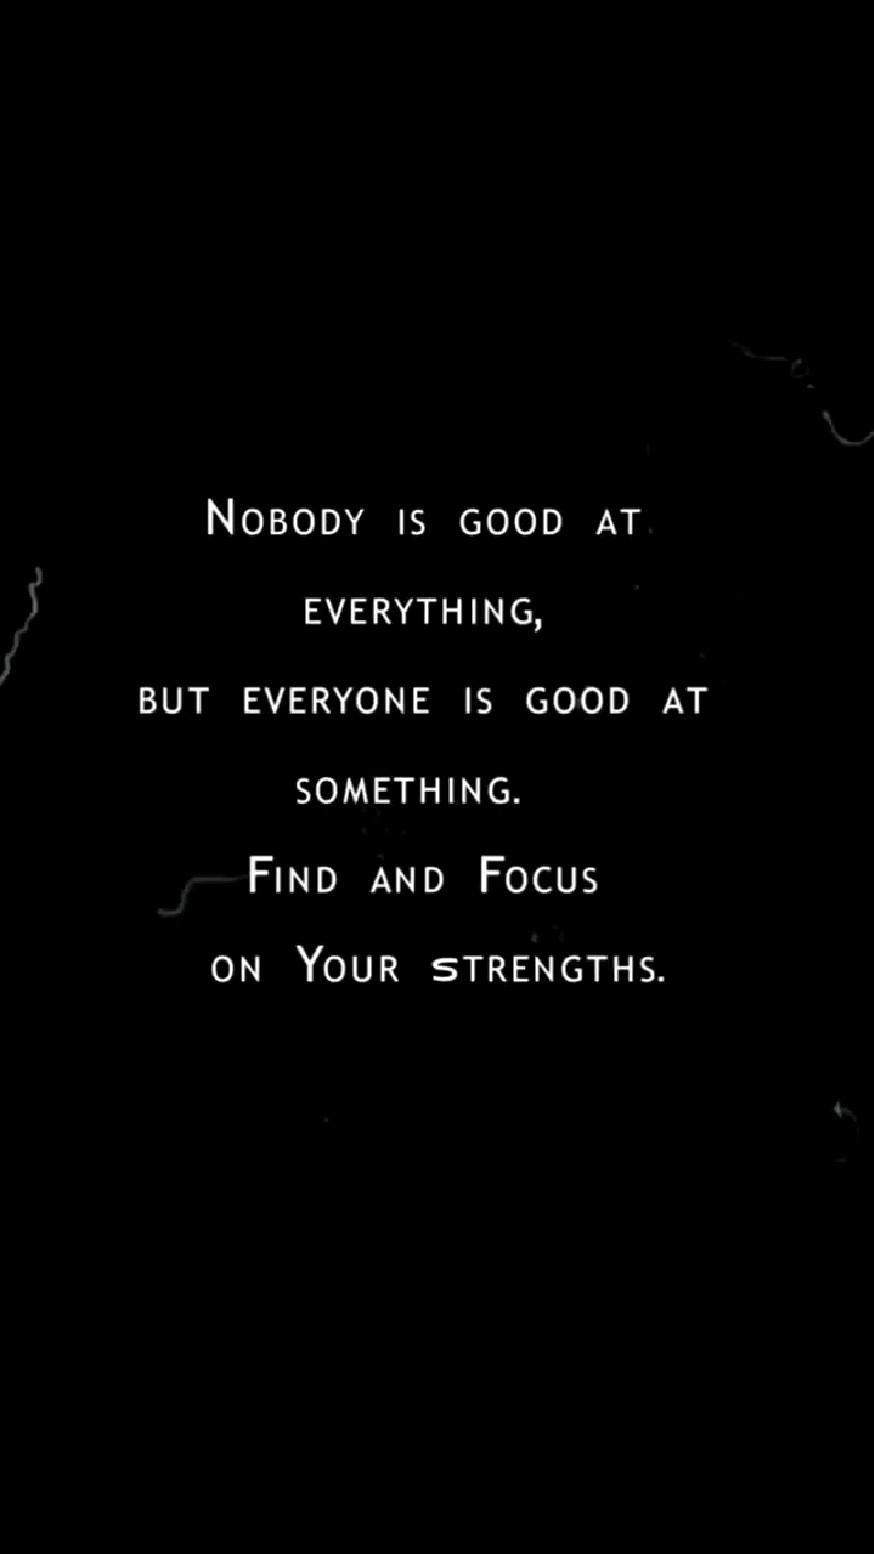 YOUR STRENGTHS!